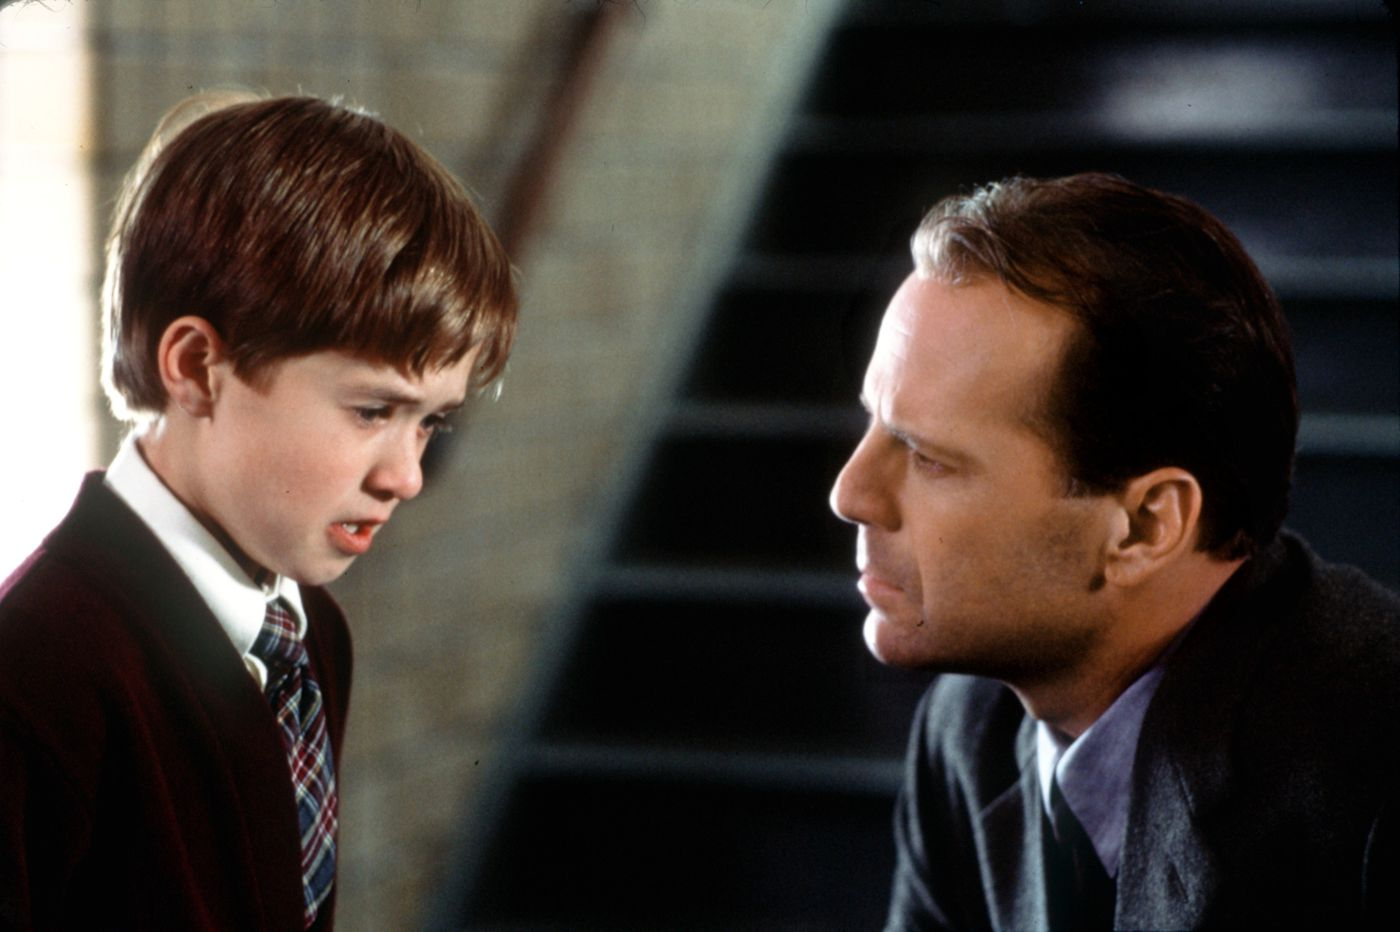 'The Sixth Sense' at 20: M. Night Shyamalan's breakout still stuns